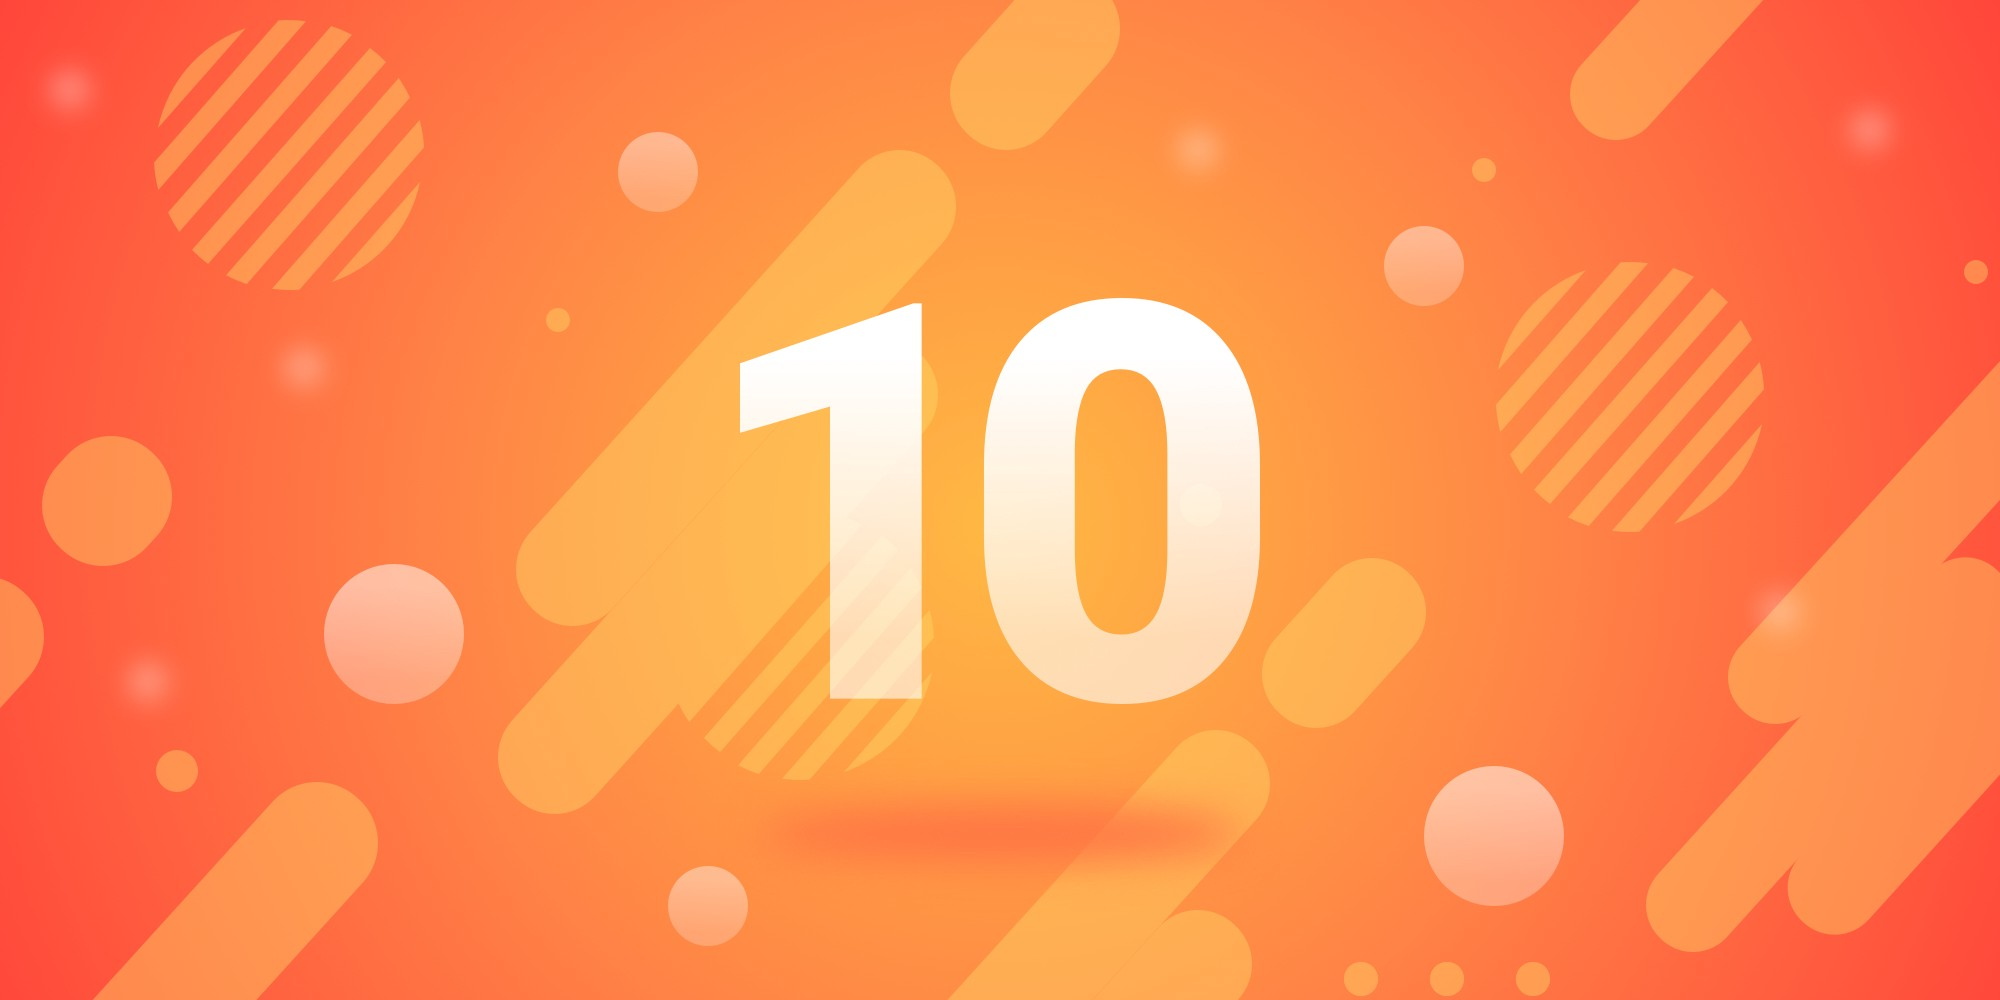 A number 10 overlaying a bright red graphic containing different shapes and patterns